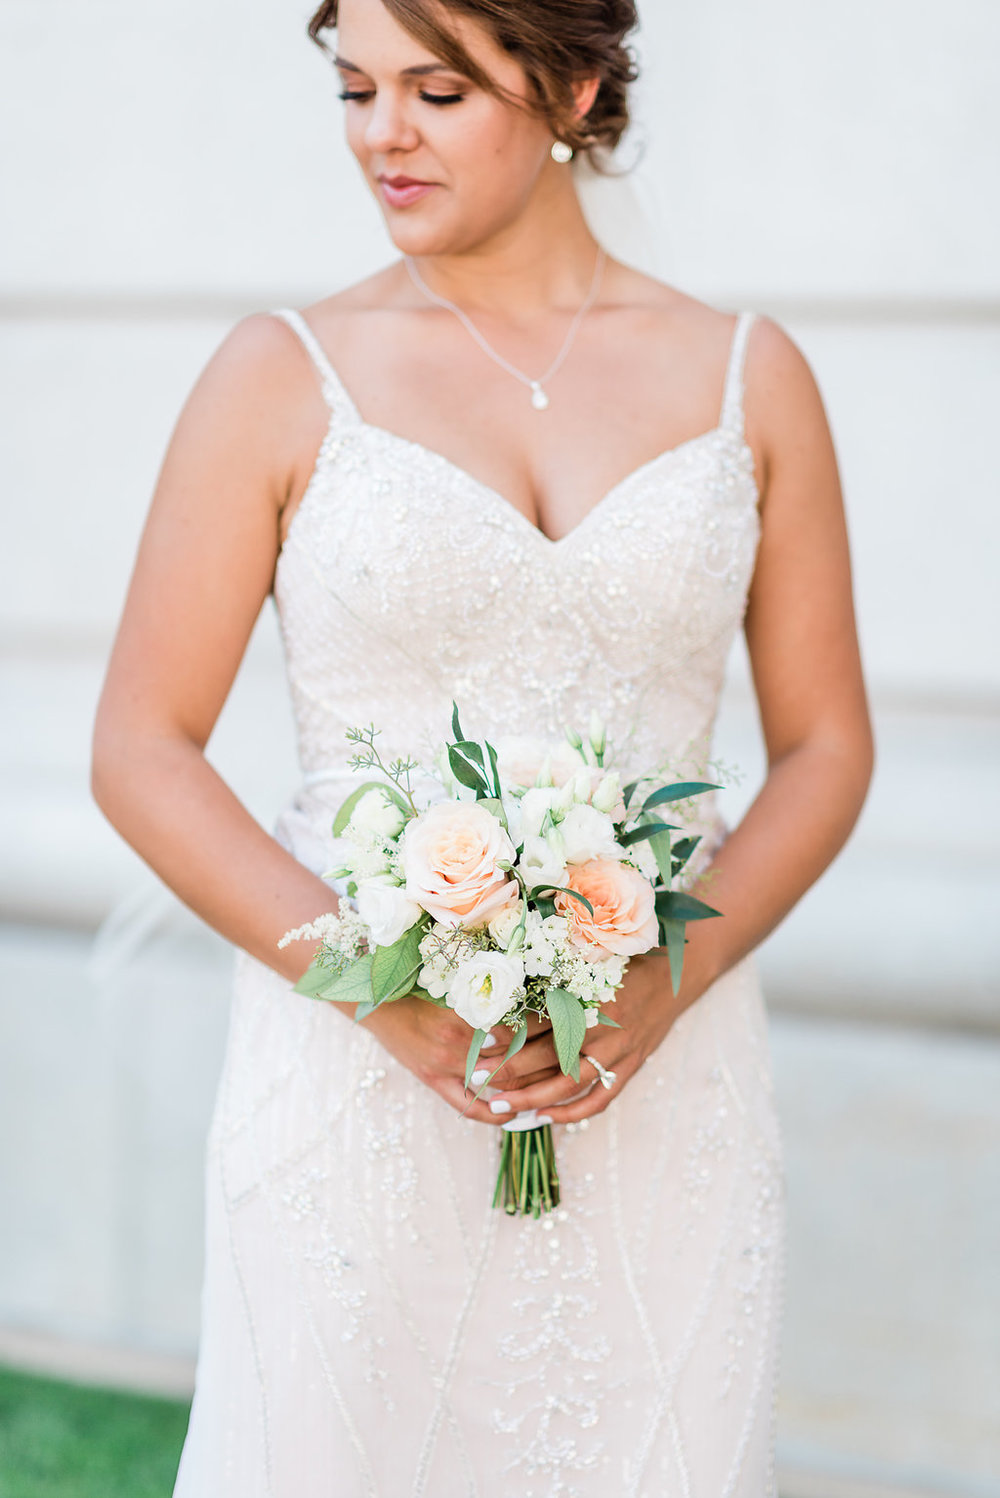 Southern Wisconsin Wedding Flowers - Madison Wisconsin